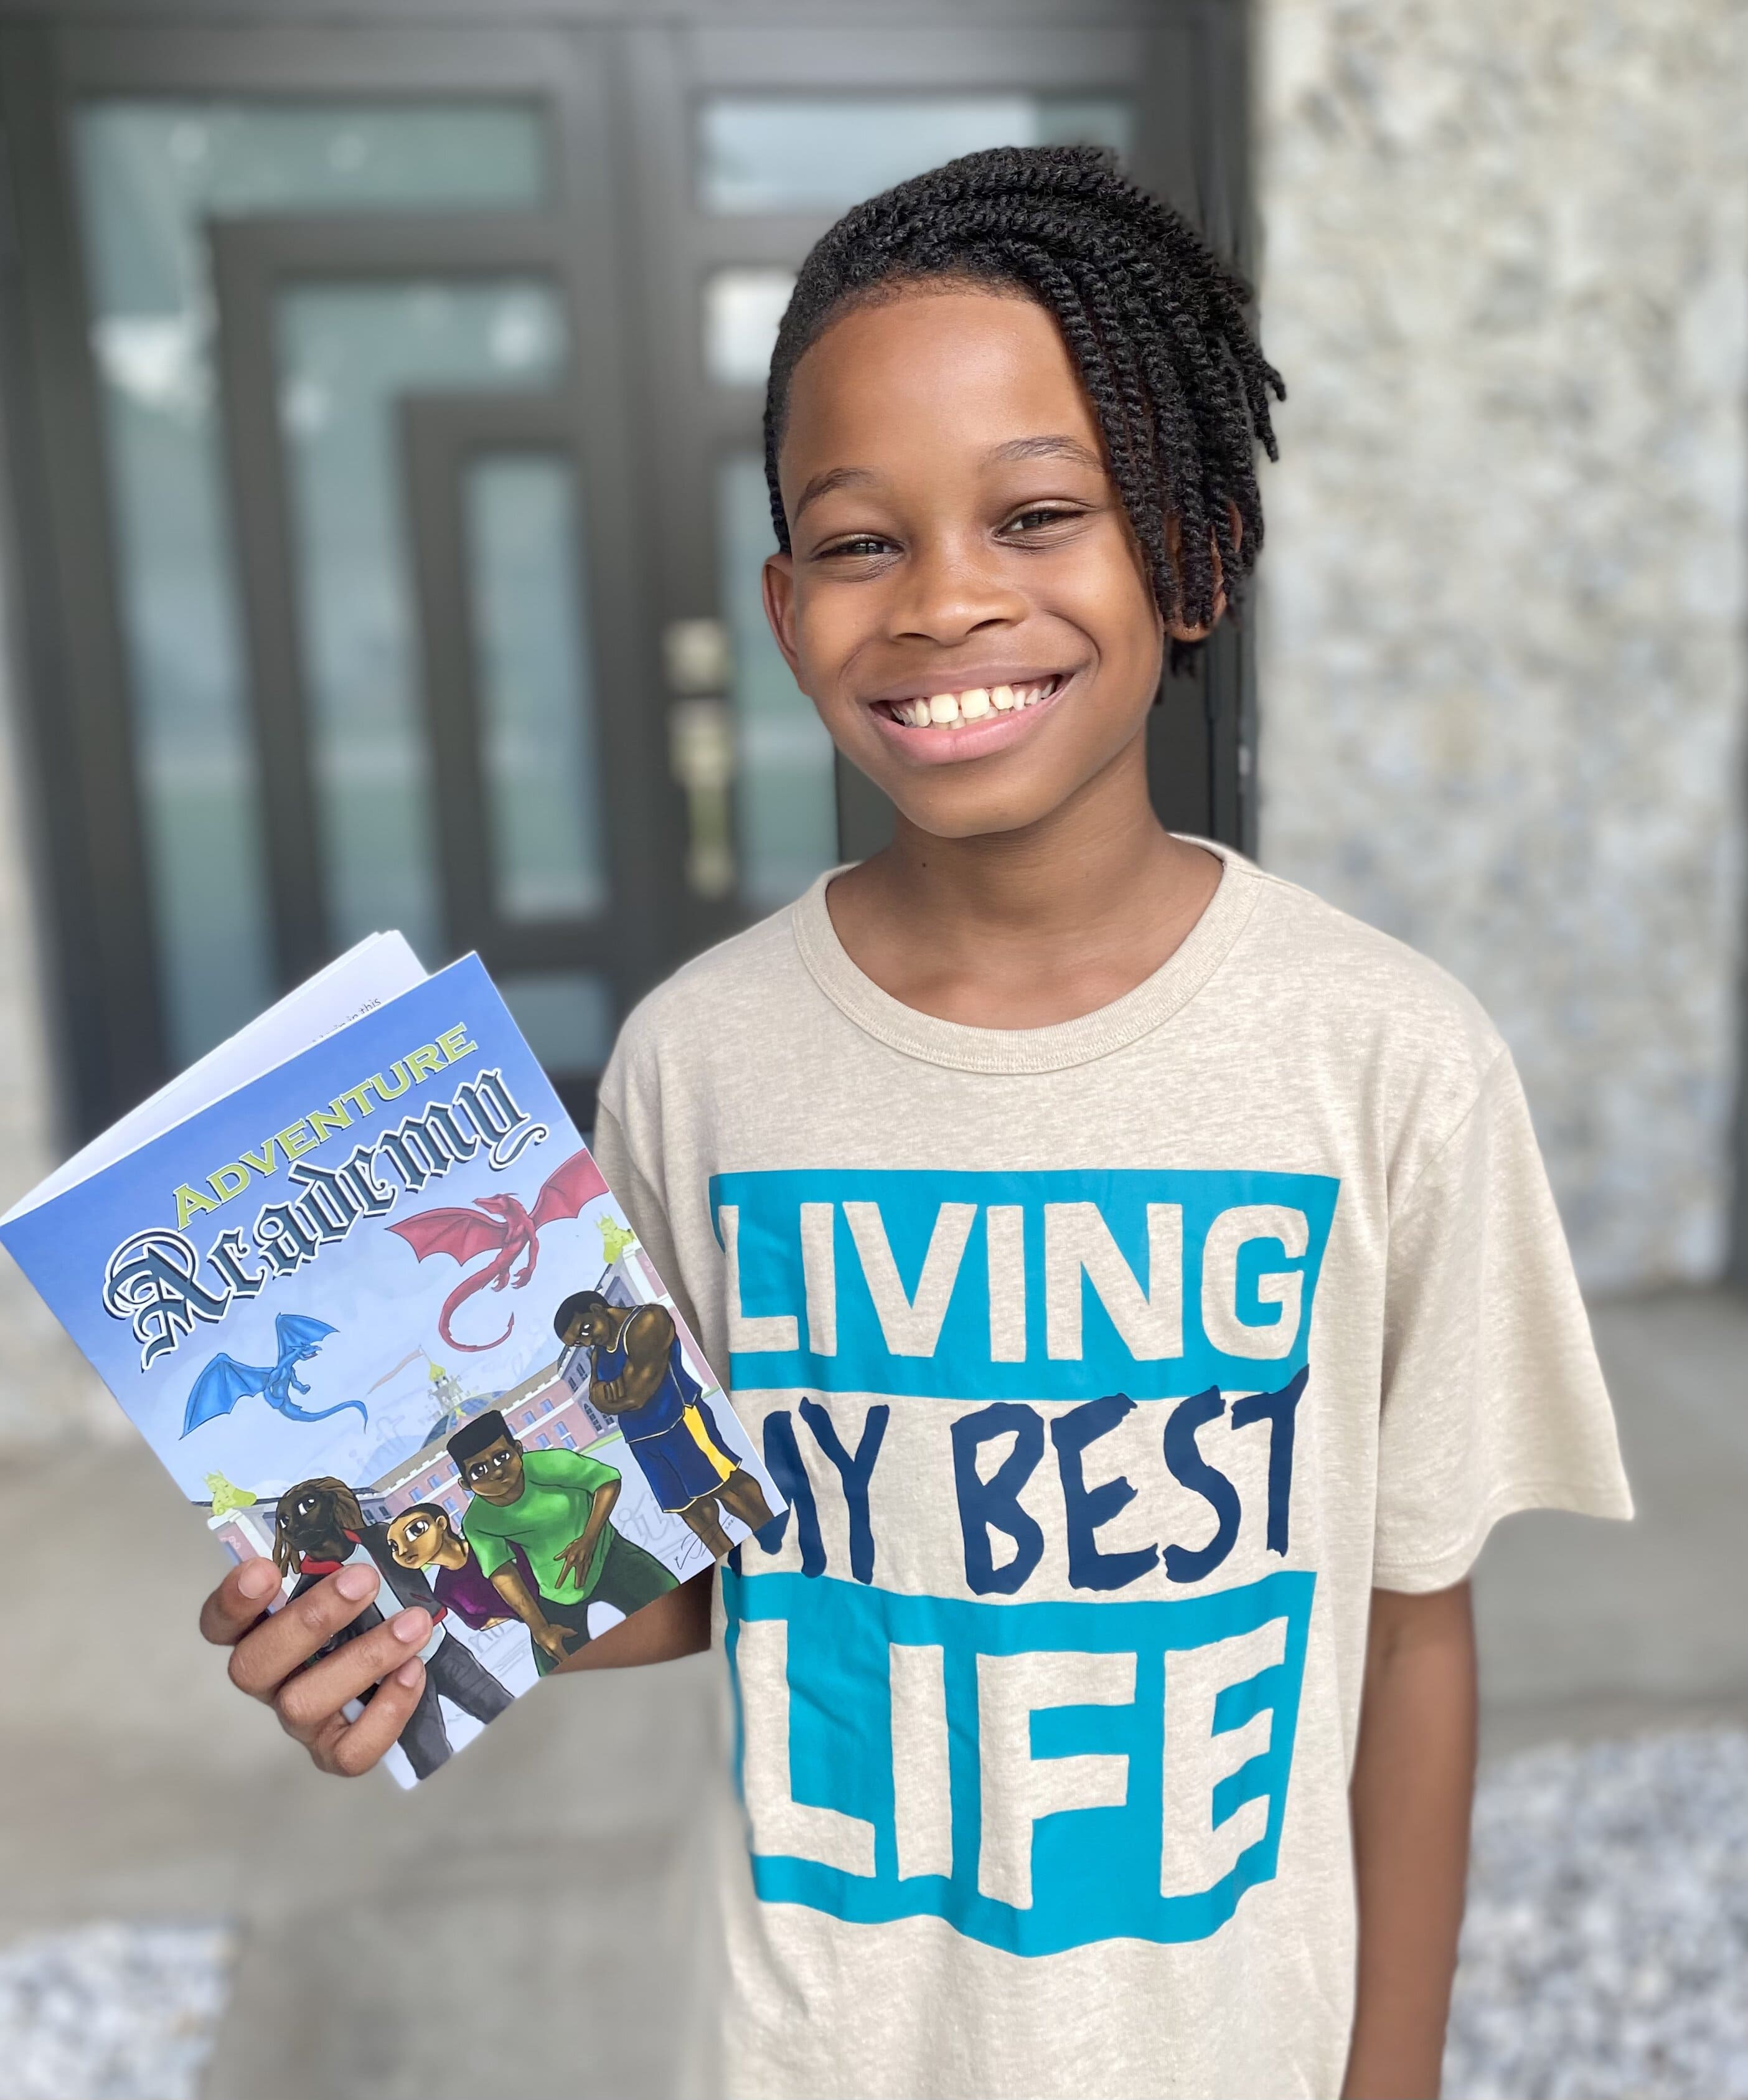 Child prodigy set to release new children's novel series inspiring young readers to overcome challenges